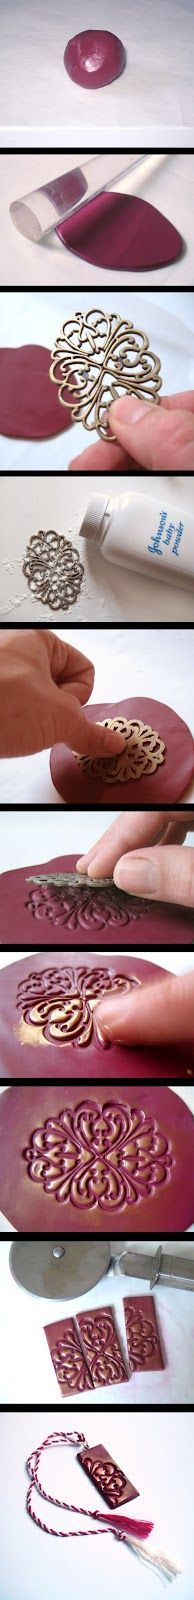 Baghy: DIY polymer clay pendant. More easy jewelry tutorials at www.pinterest.com/EverDesigns Follow us!